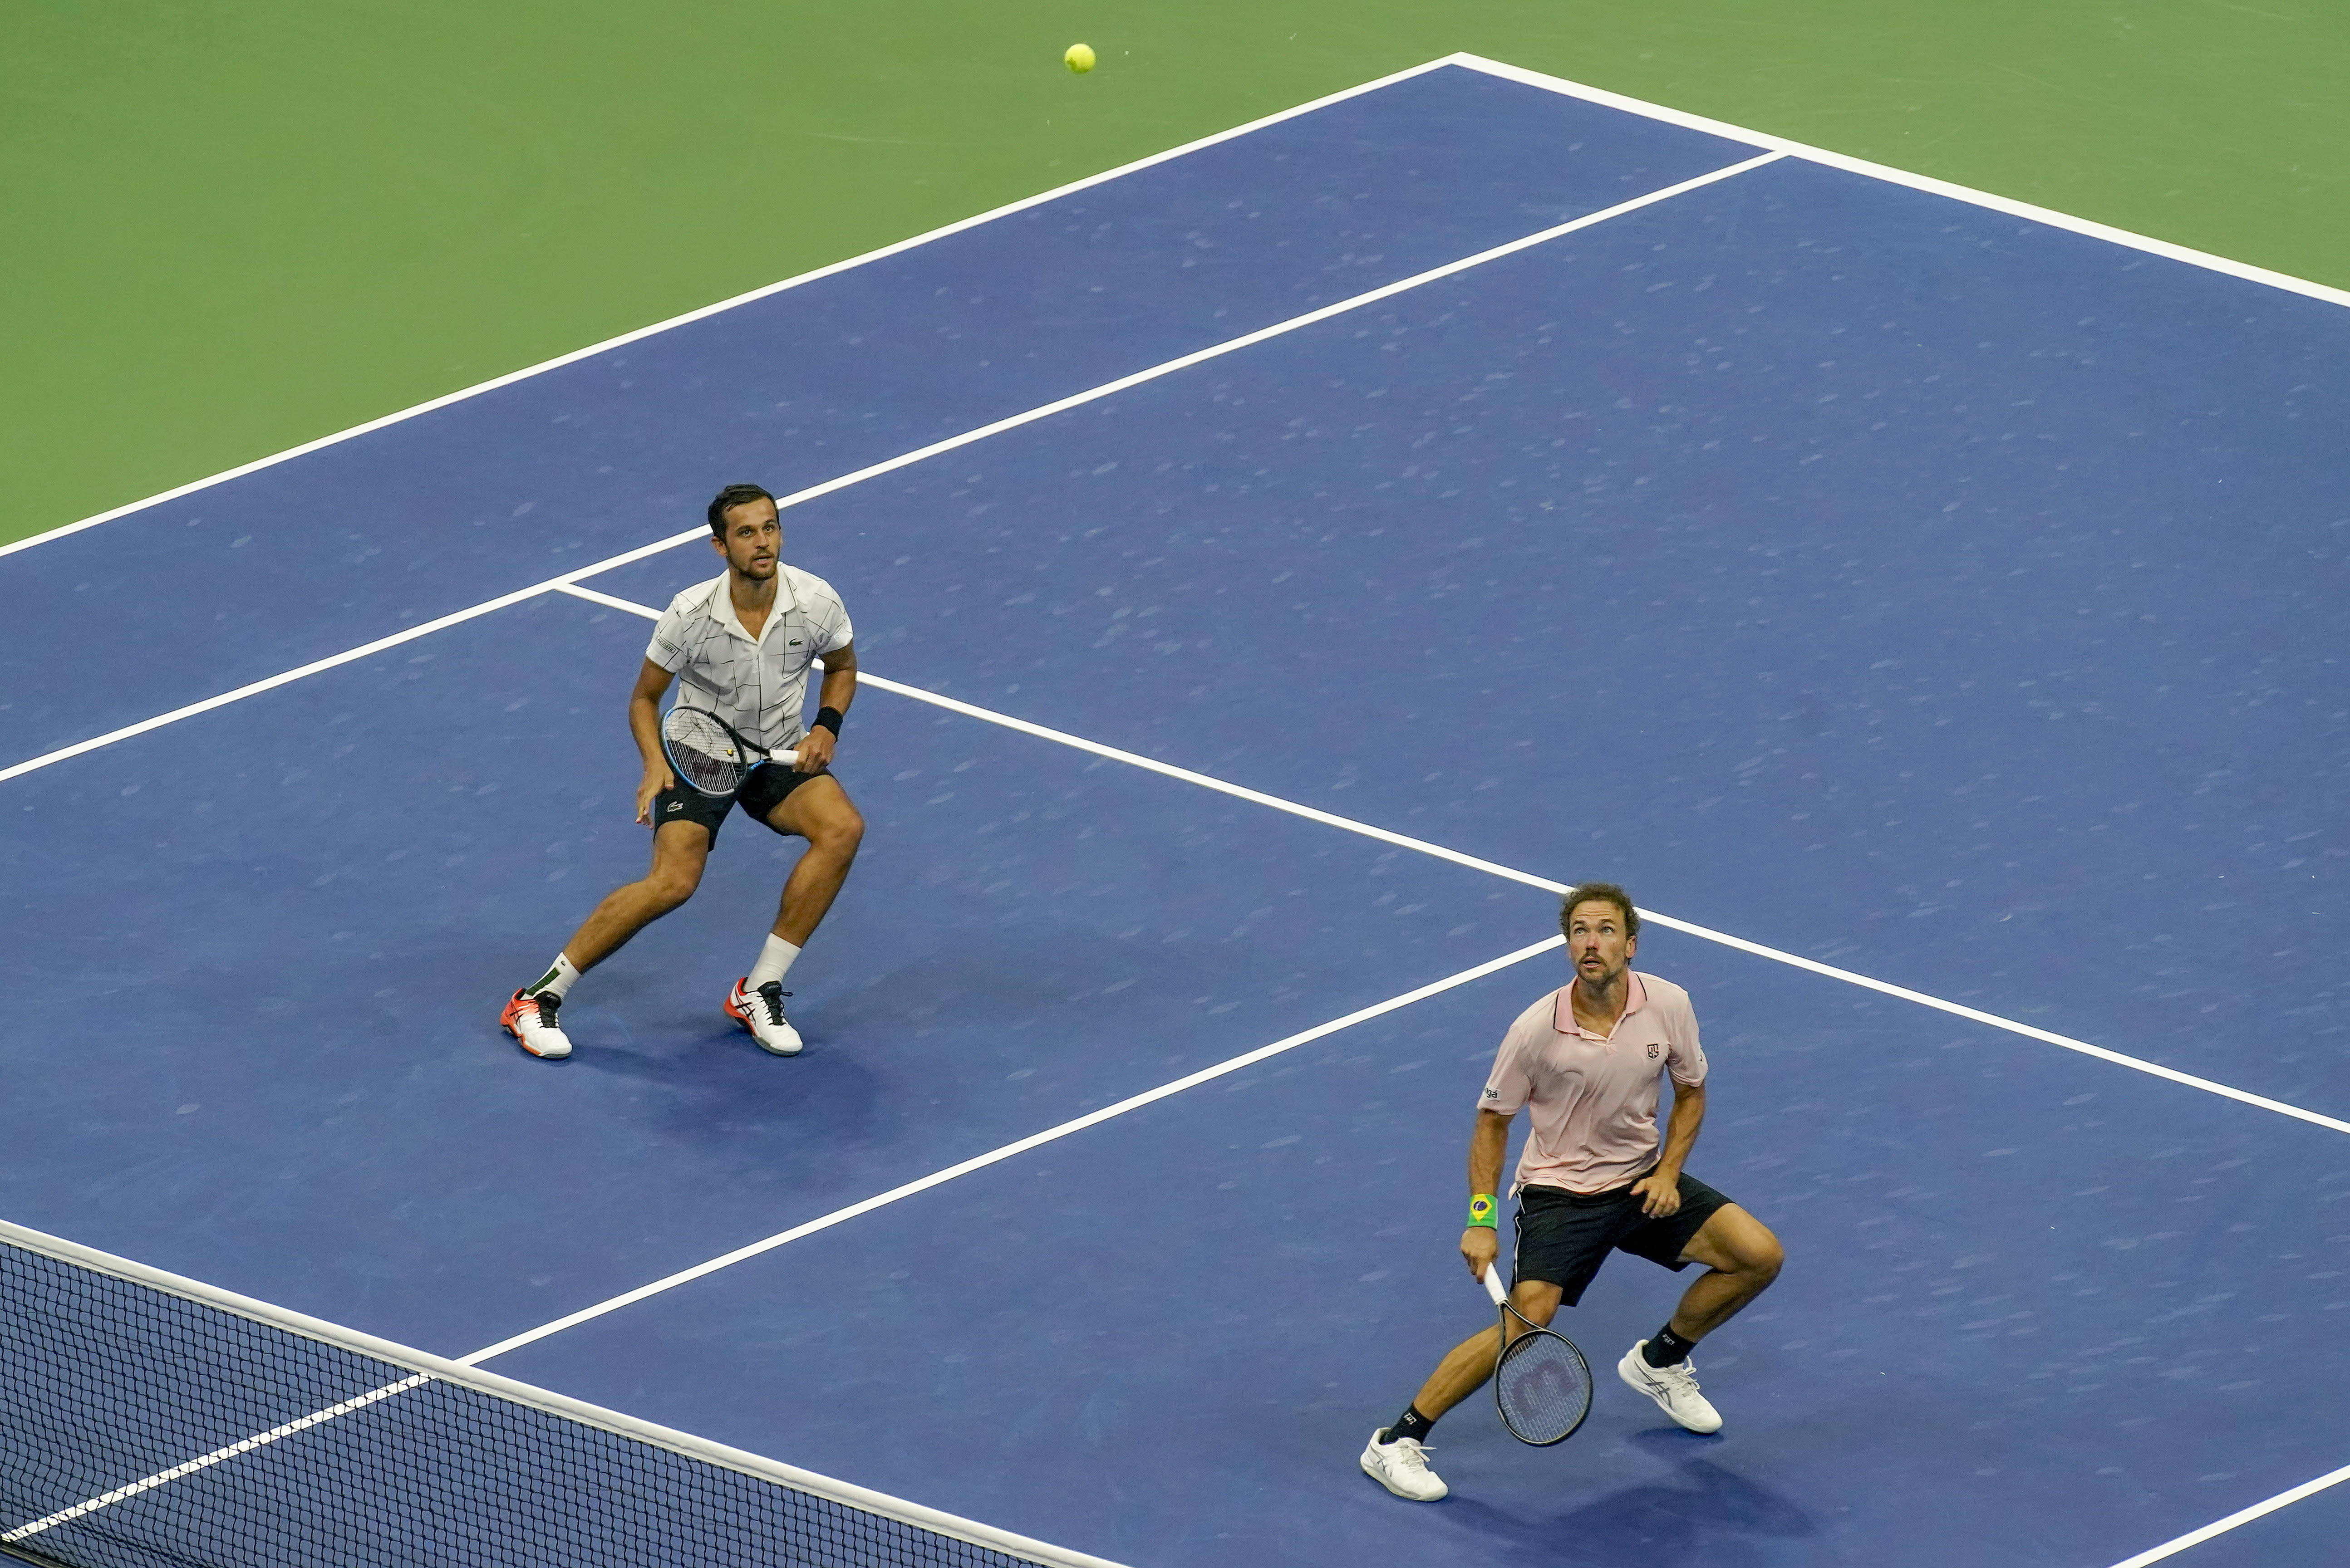 Mate Pavic, of Croatia, left, and Bruno Soares, of Brazil, chase down a shot from Wesley Koolhof, of the Netherlands, and Nikola Mektic, of Croatia, during the men's doubles final of the U.S. Open tennis championships, Thursday, Sept. 10, 2020, in New York. (AP Photo/Seth Wenig)